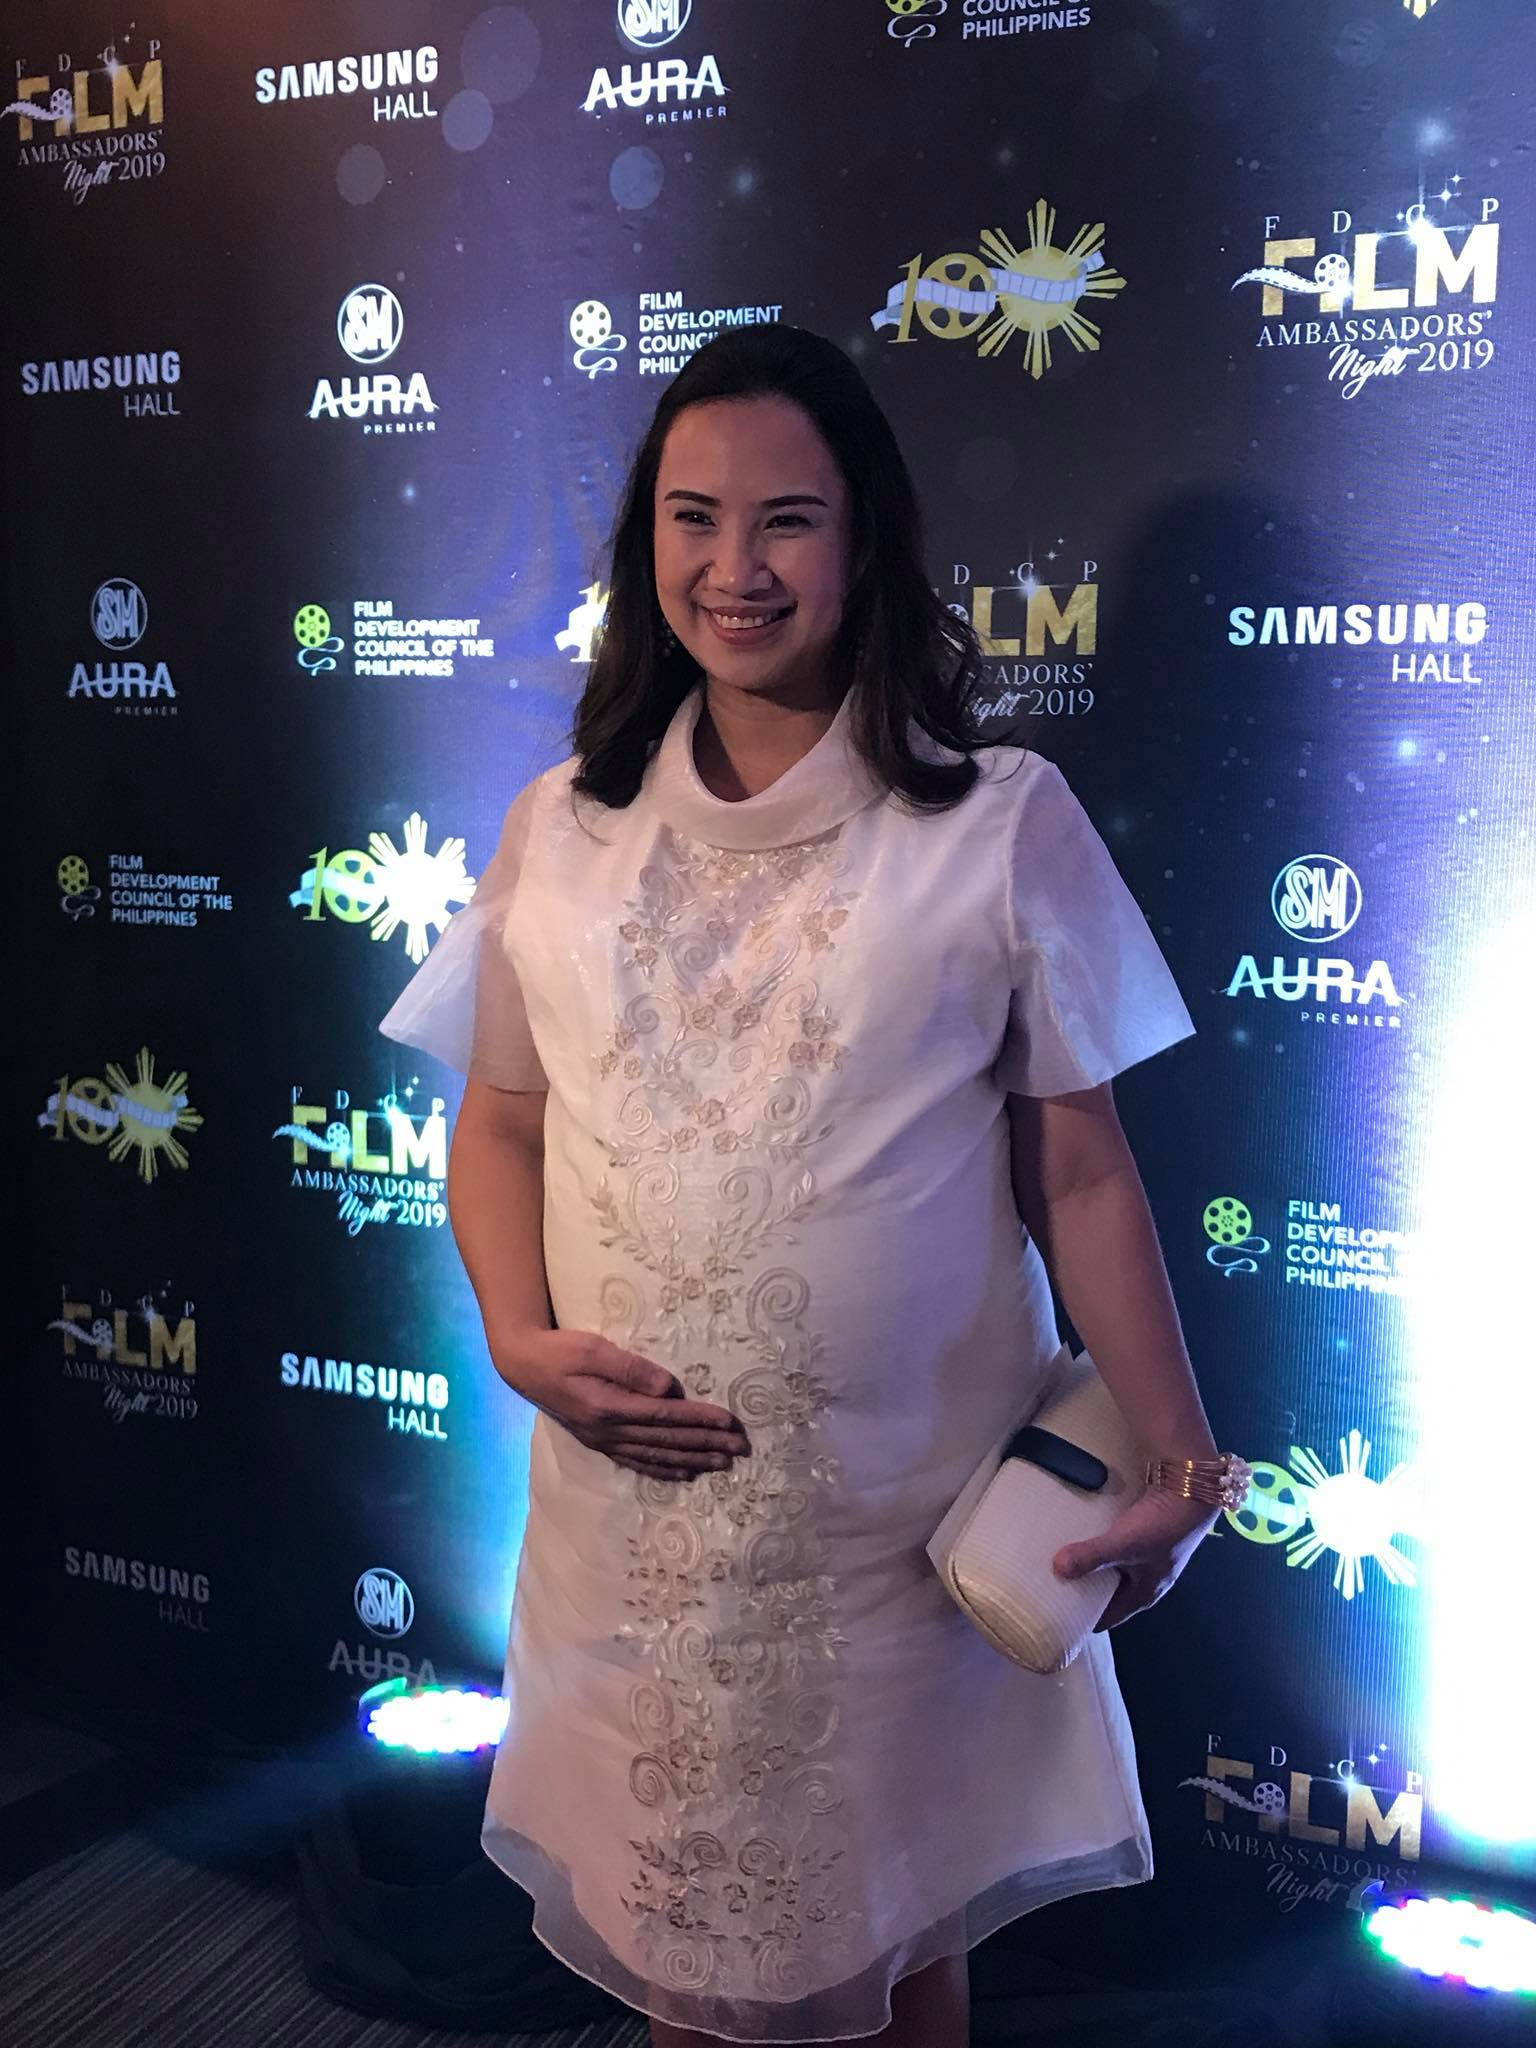 AWARDEE. Producer Bianca Balbuena